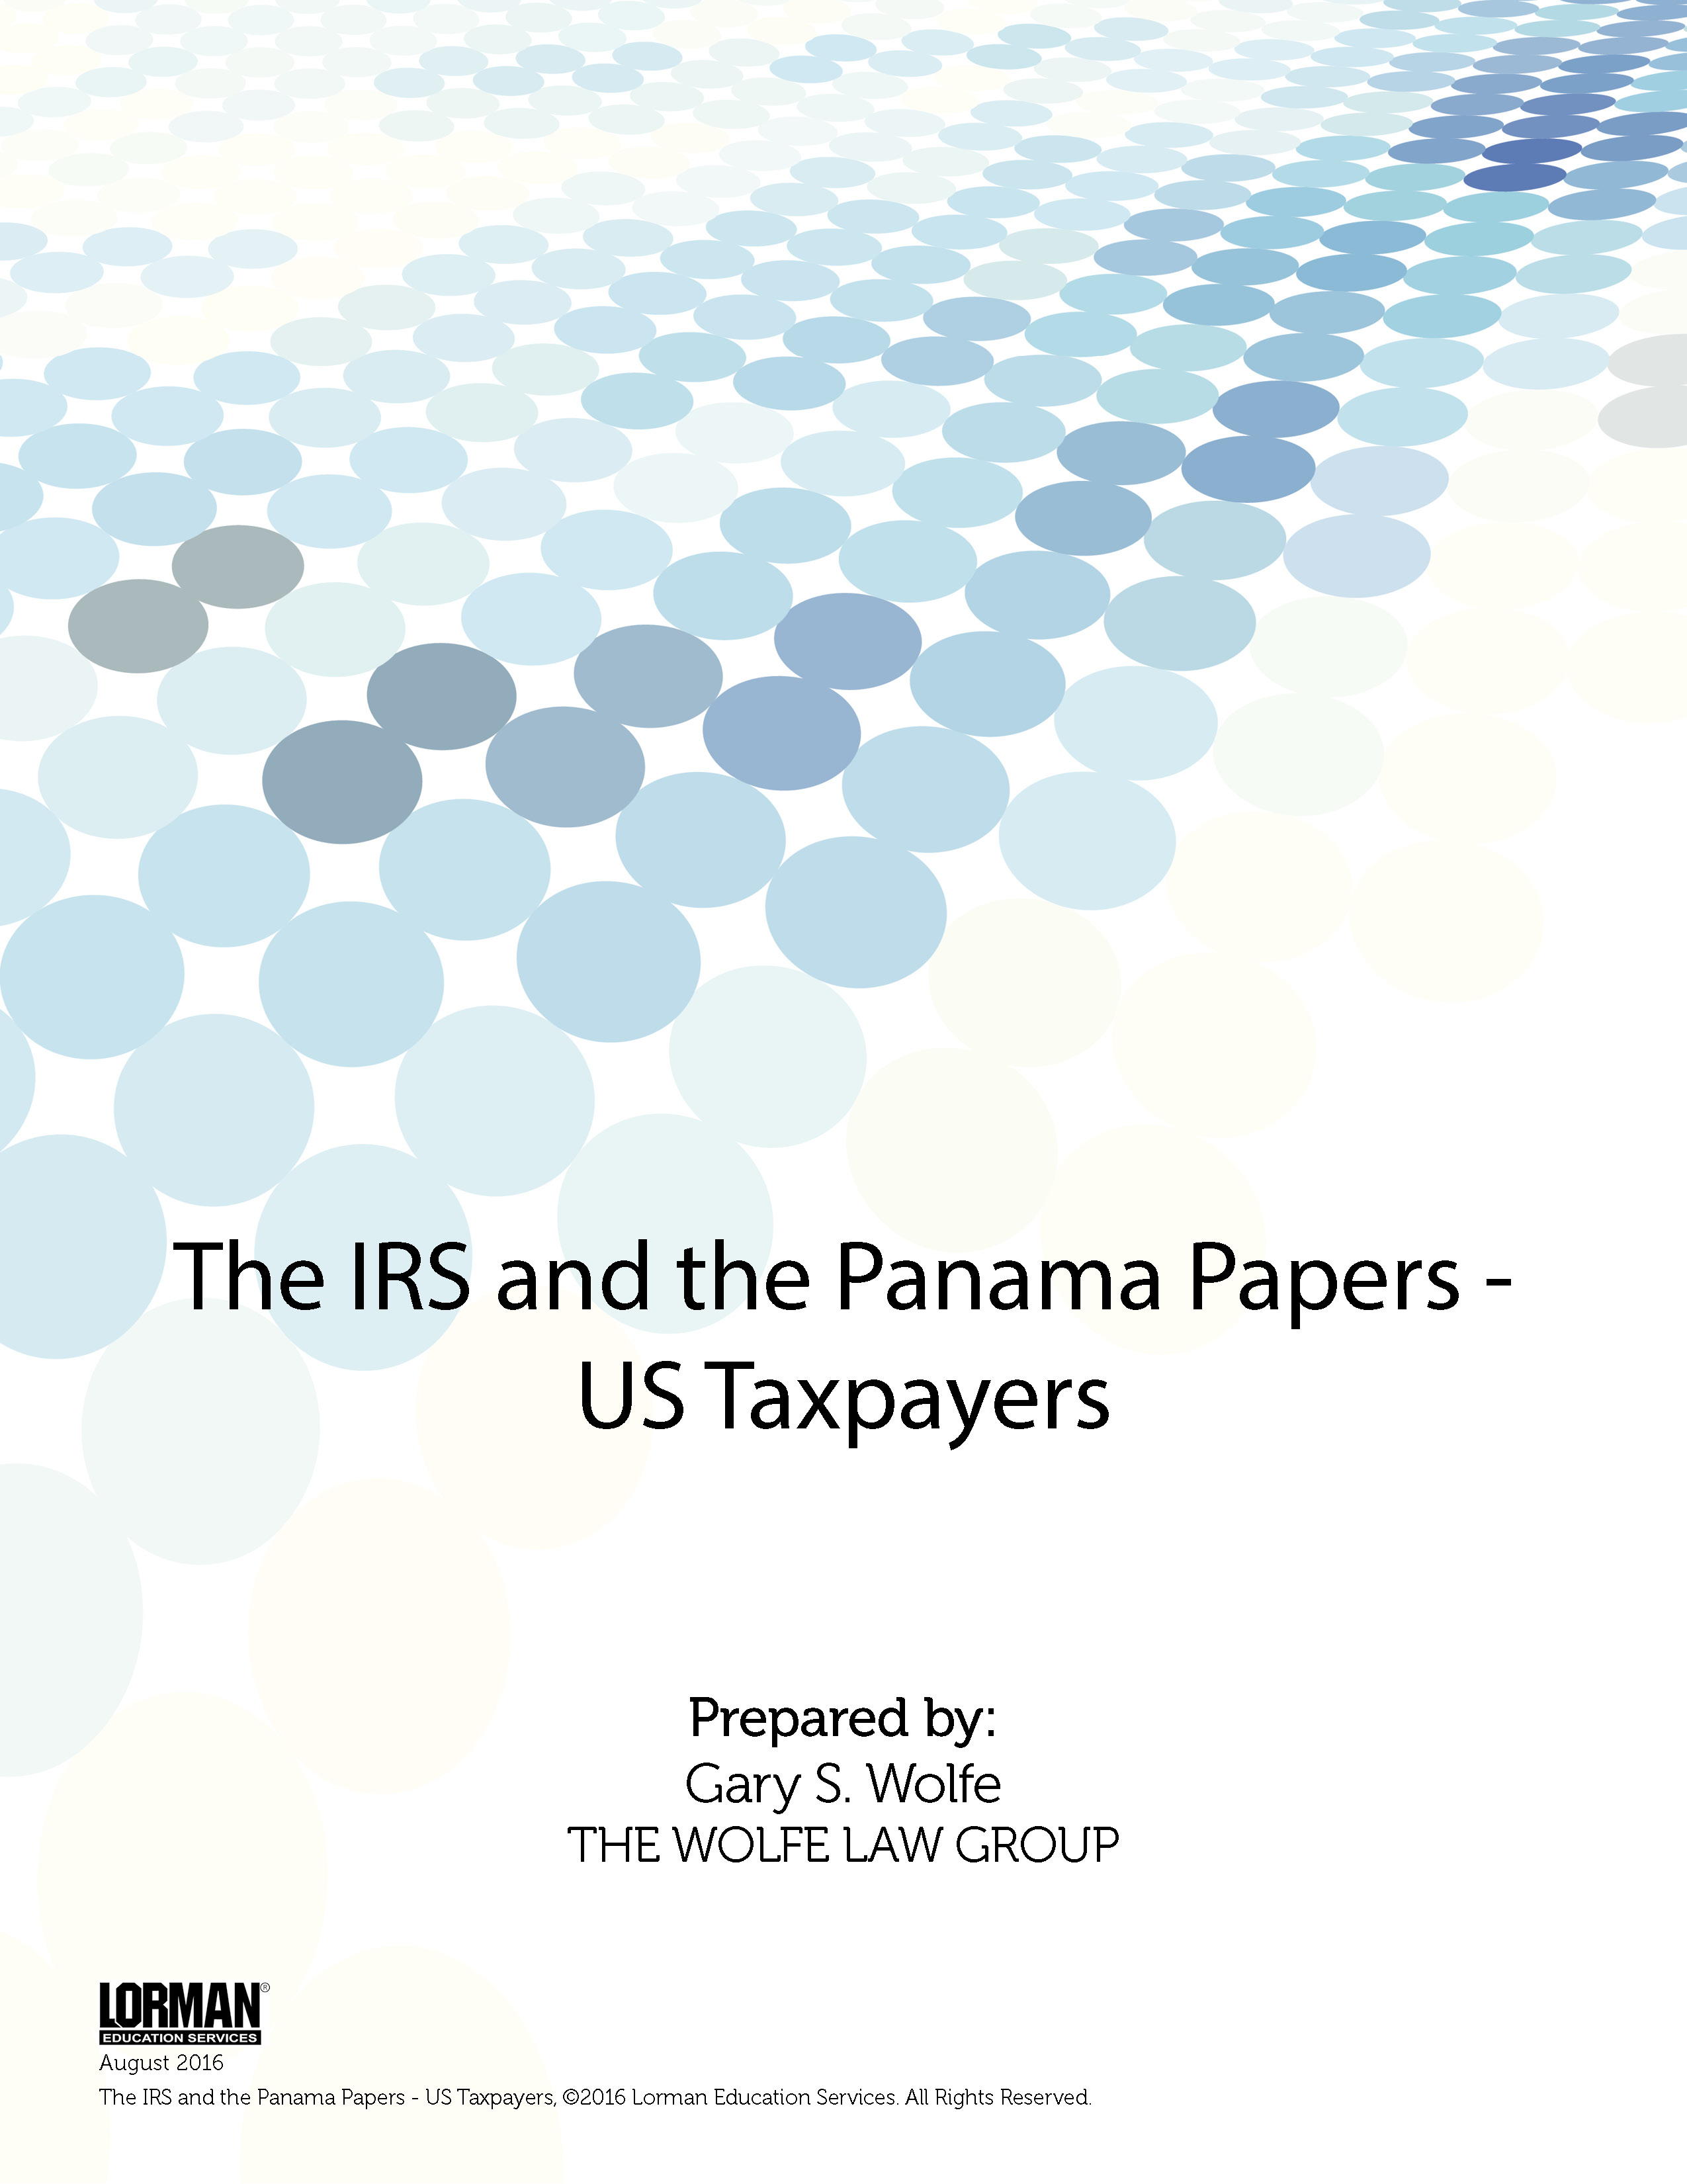 The IRS and the Panama Papers - US Taxpayers